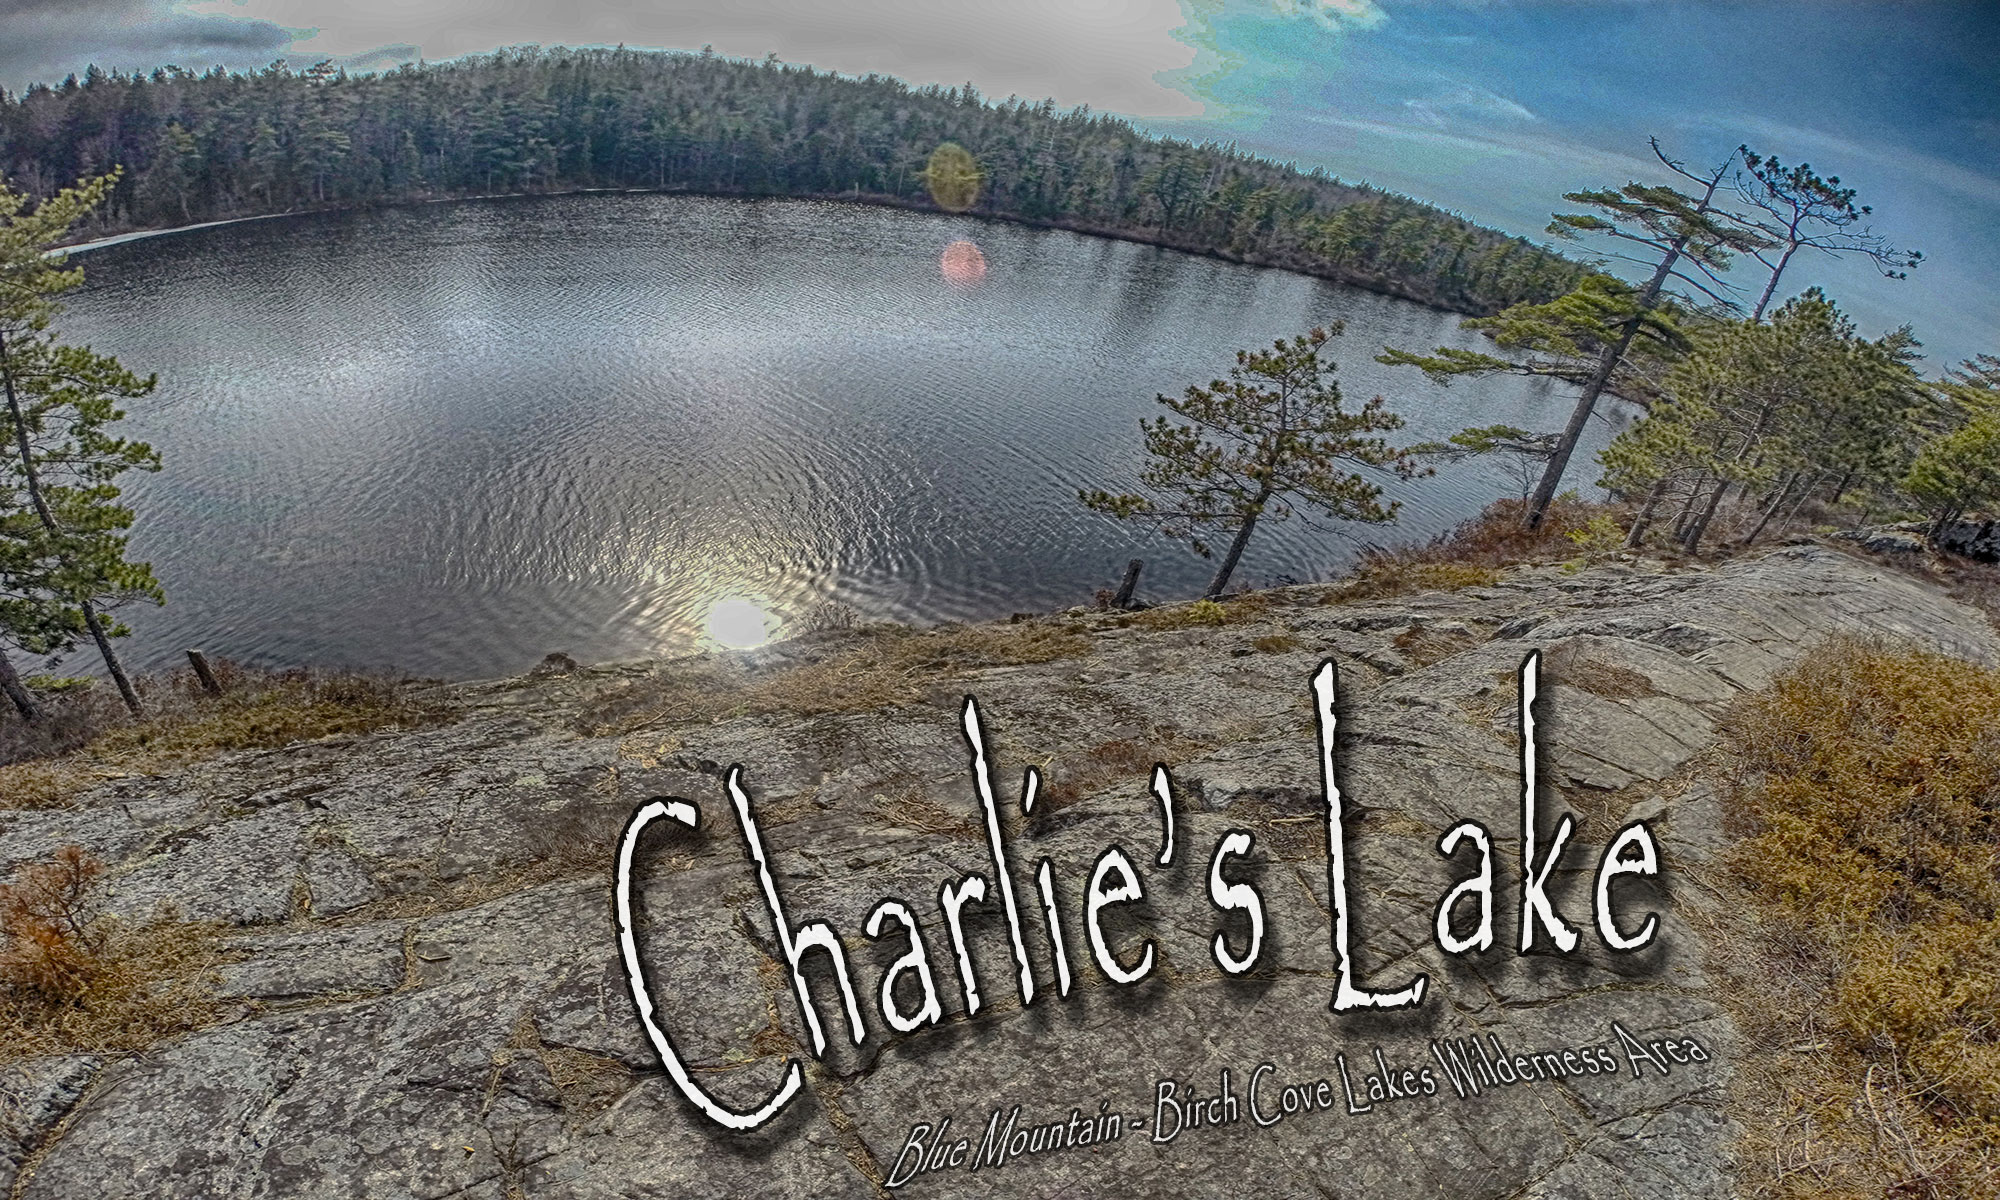 Charlie's Lake Trail